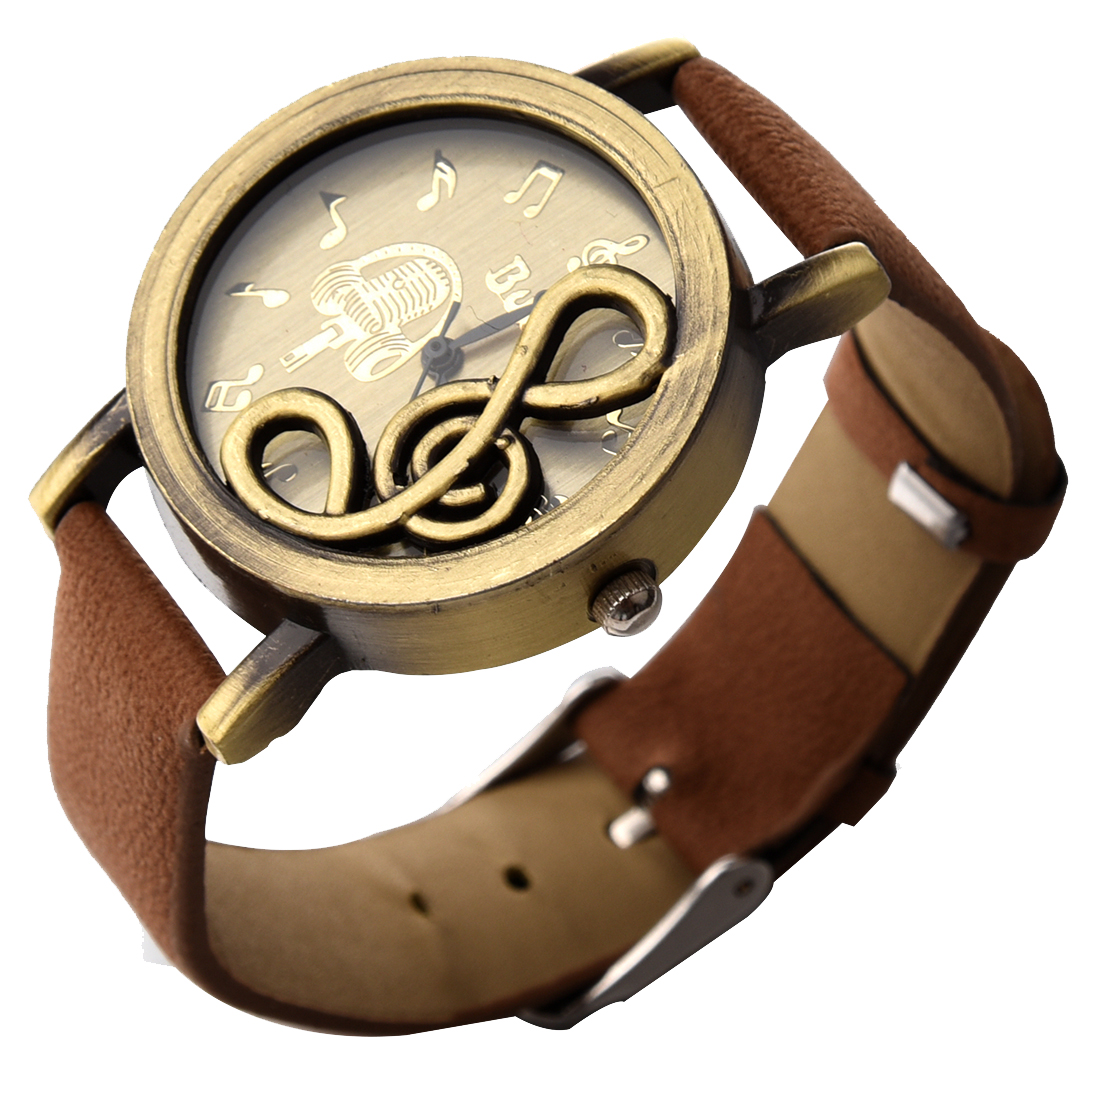 YCYS-New Retro Musical Note Dial Quartz Movement Watch with PU Leather Wrist Watch Coffee woman s retro flower dial analog quartz wrist watch w pu leather band yellow brass 1 x 377